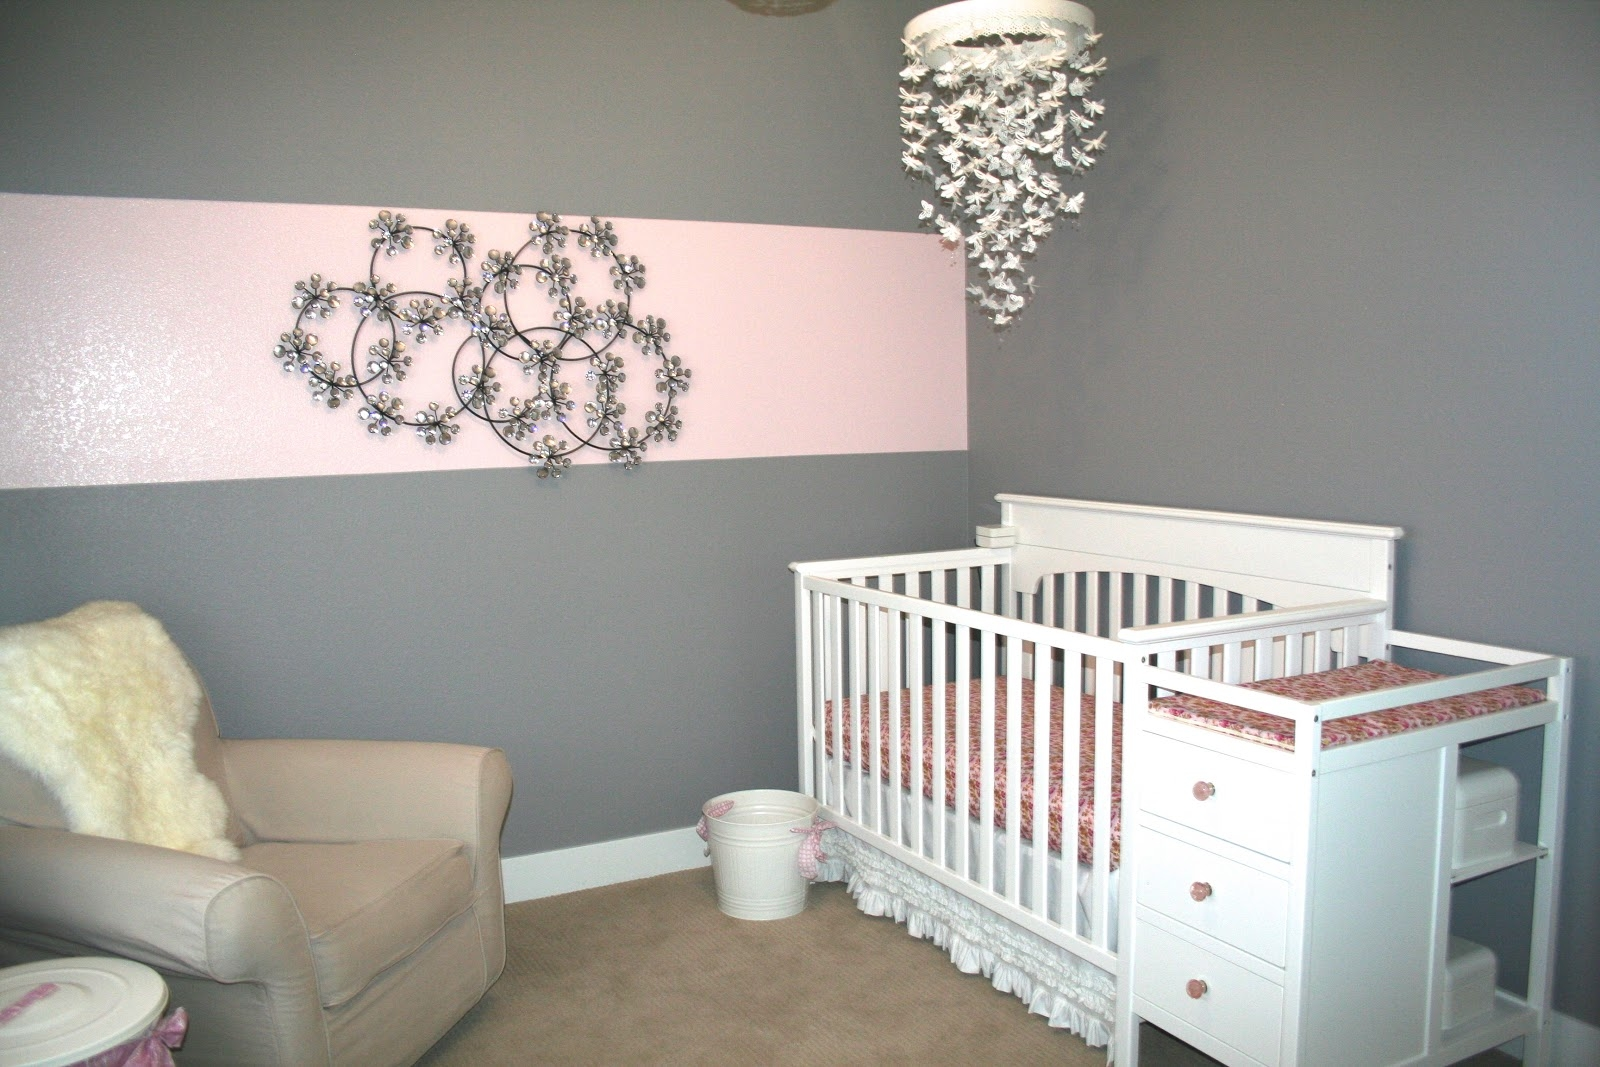 Gorgeous Ba Nursery Chandeliers 64 Ba Girl Bedroom Chandeliers With Regard To Chandeliers For Girl Nursery (View 7 of 25)